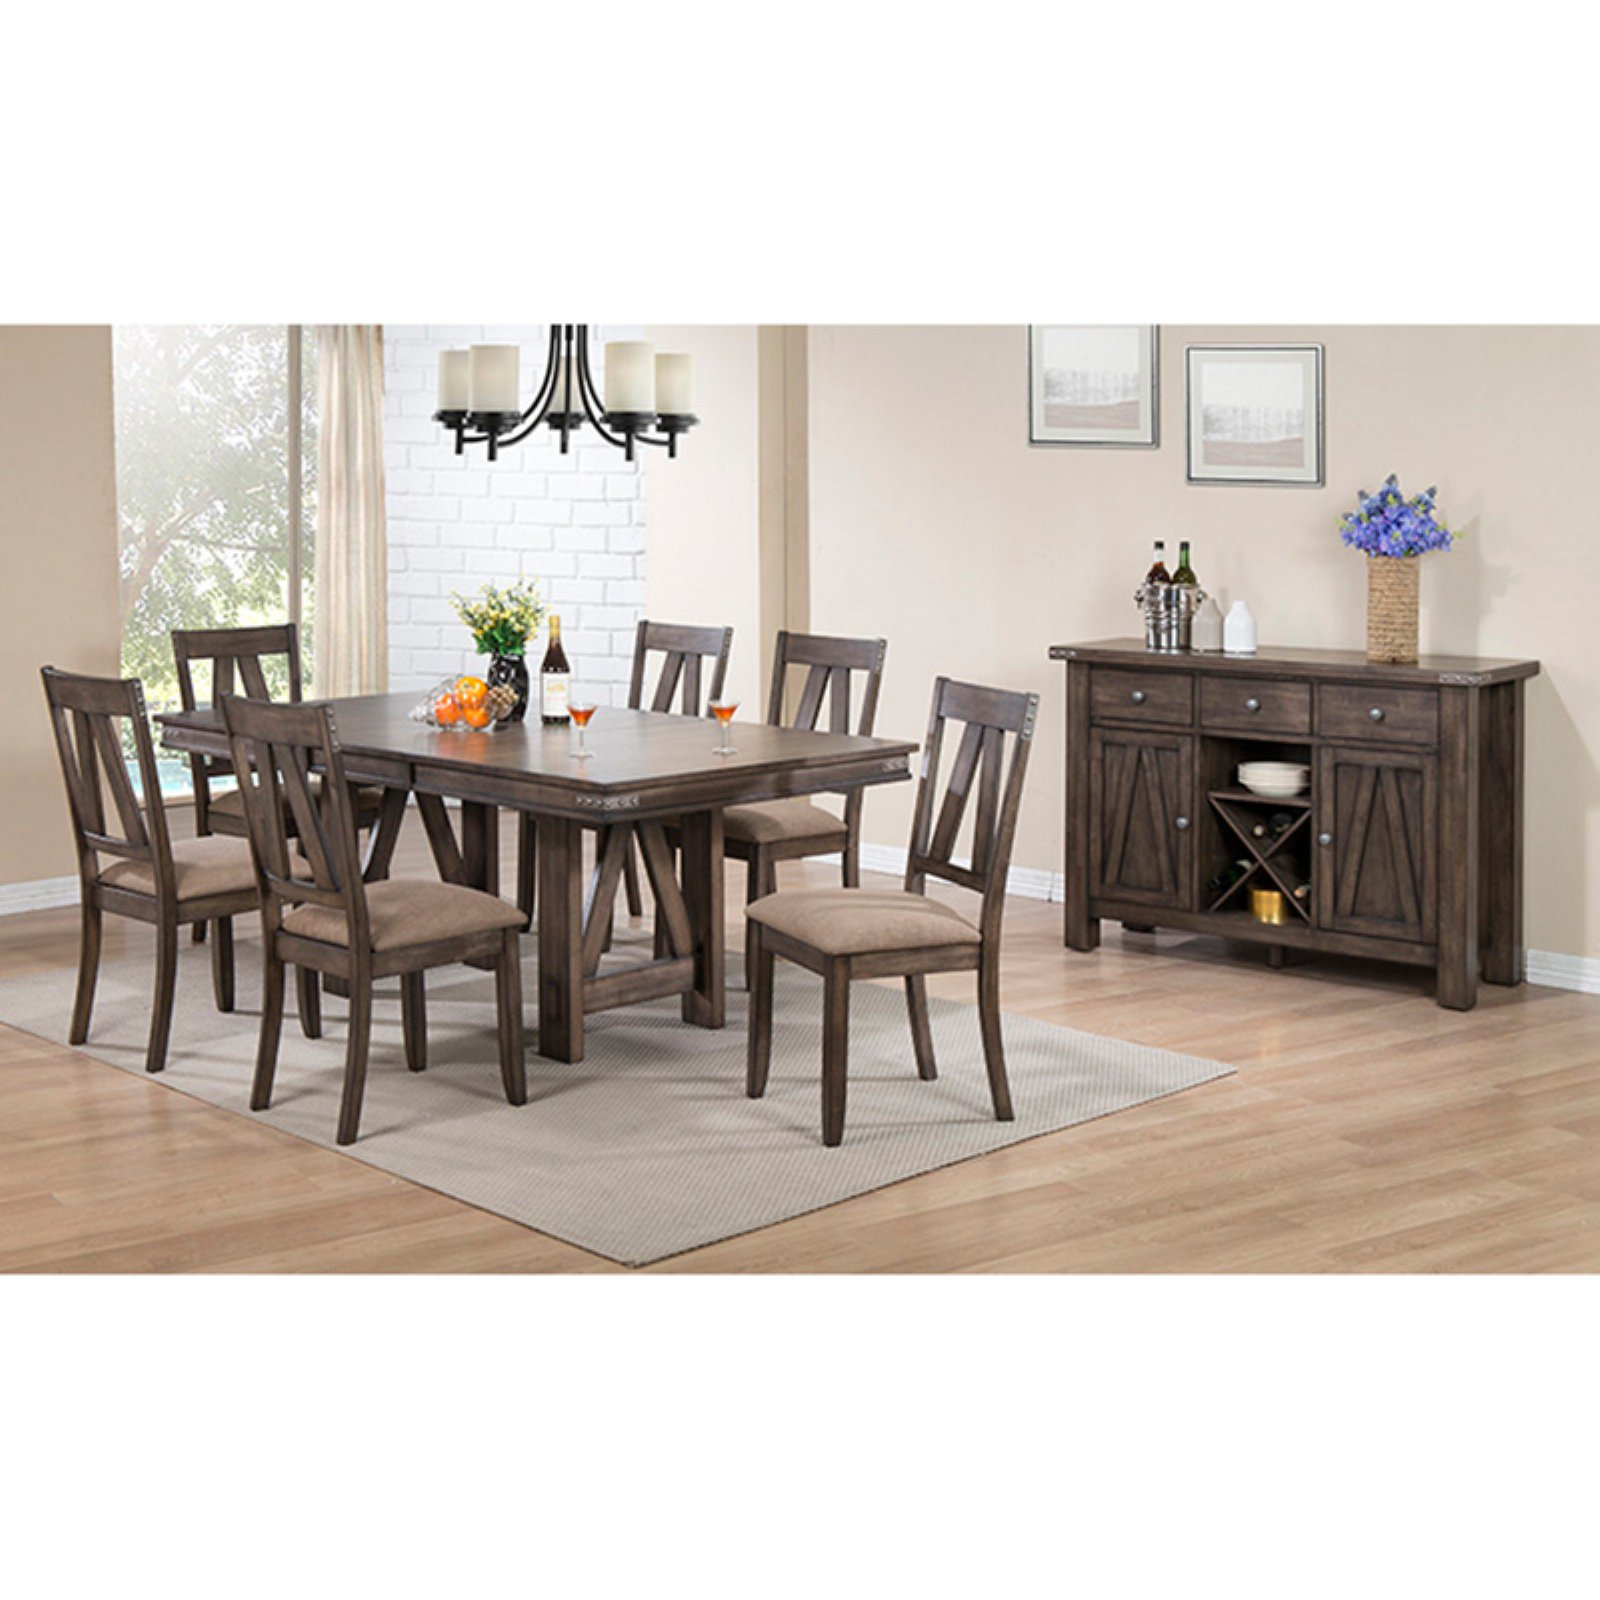 K&B Furniture Brown Wood Rectangular Dining Table with Leaf